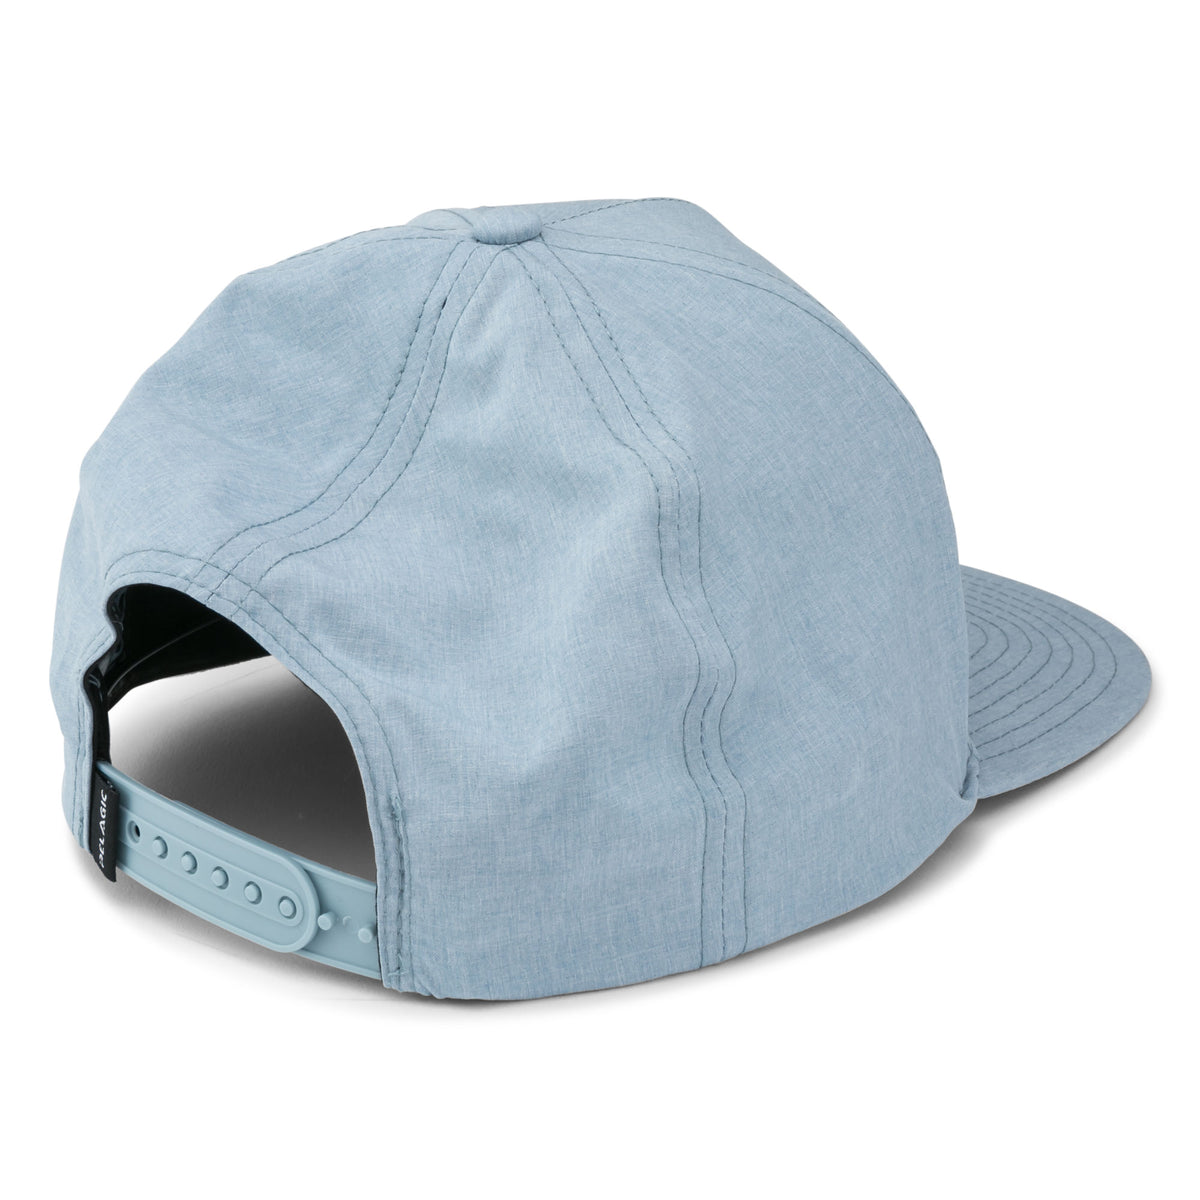 Deep Sea Snapback Hat Big Image - 4